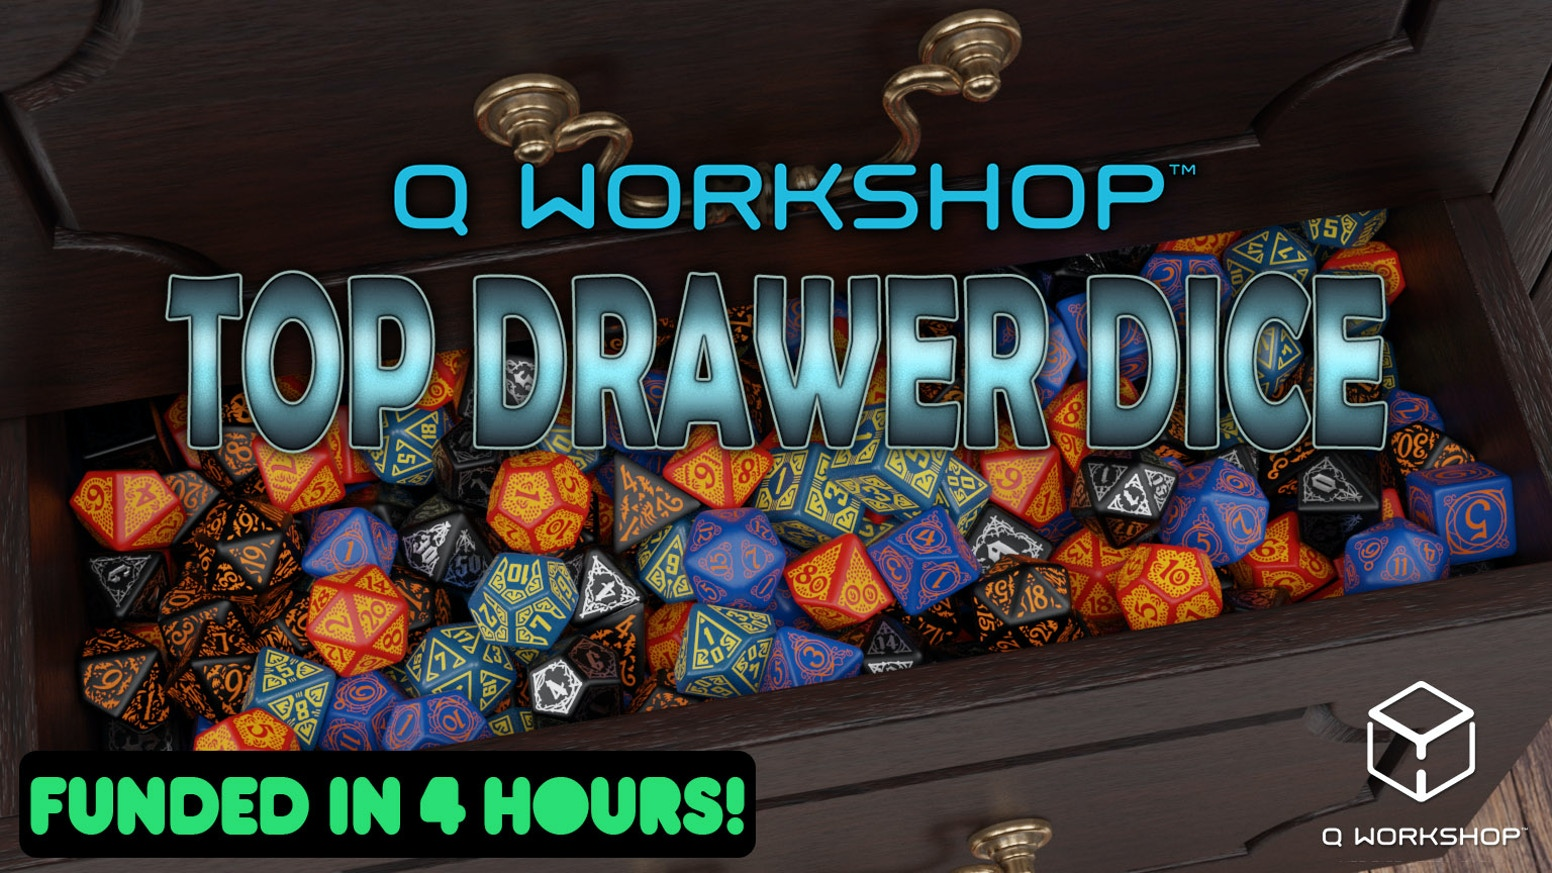 A unique opportunity to get fancy dice for your every need!